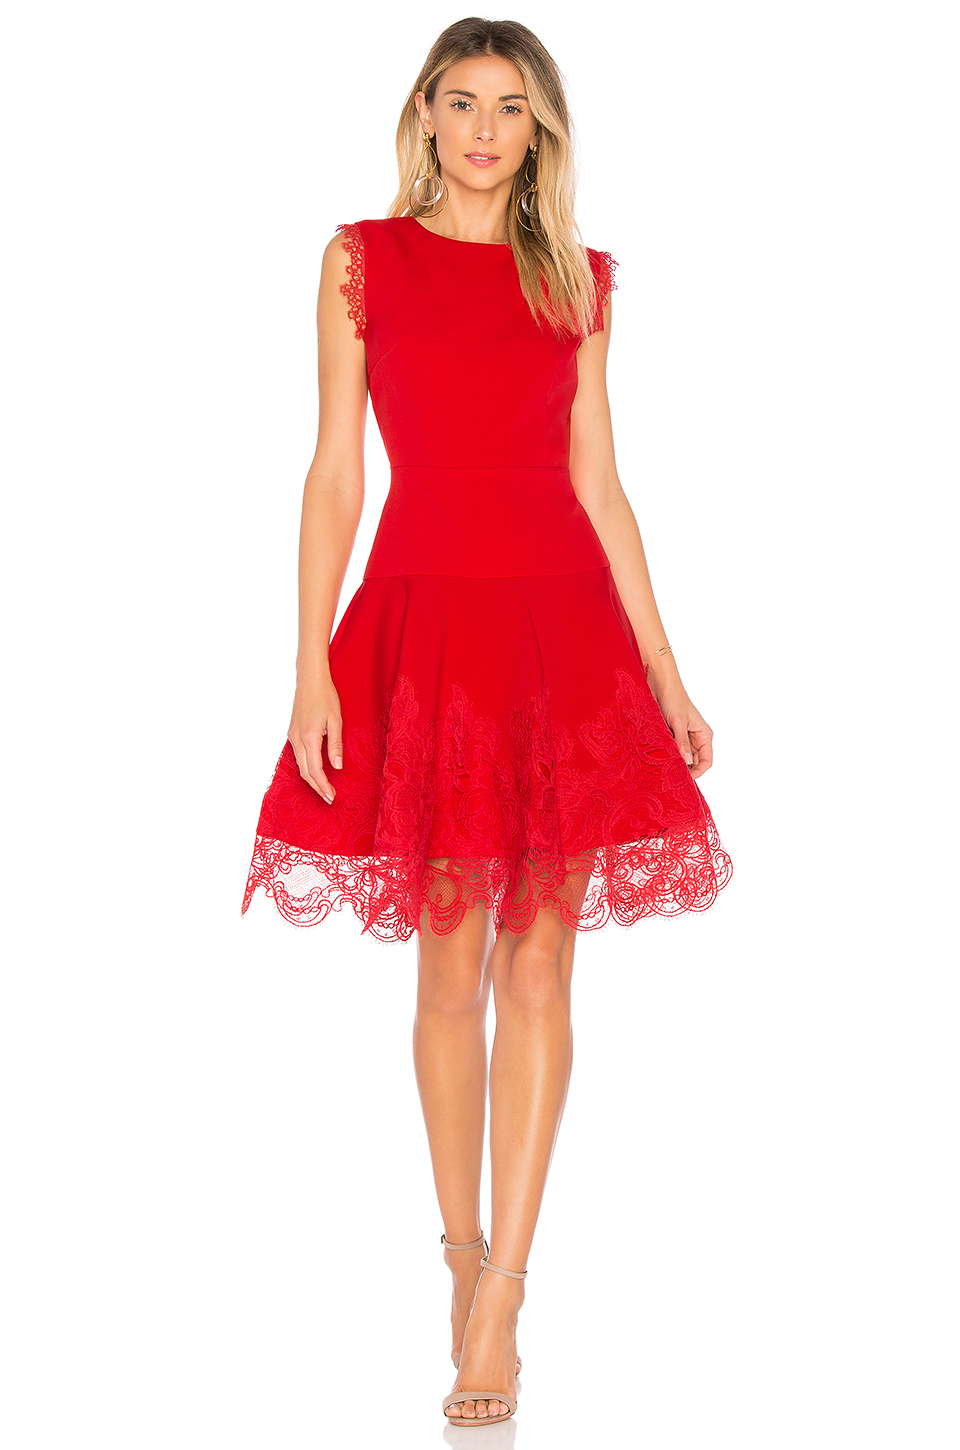 36a94074aa Buy Original Bronx and Banco Antonia Red Dress at Indonesia